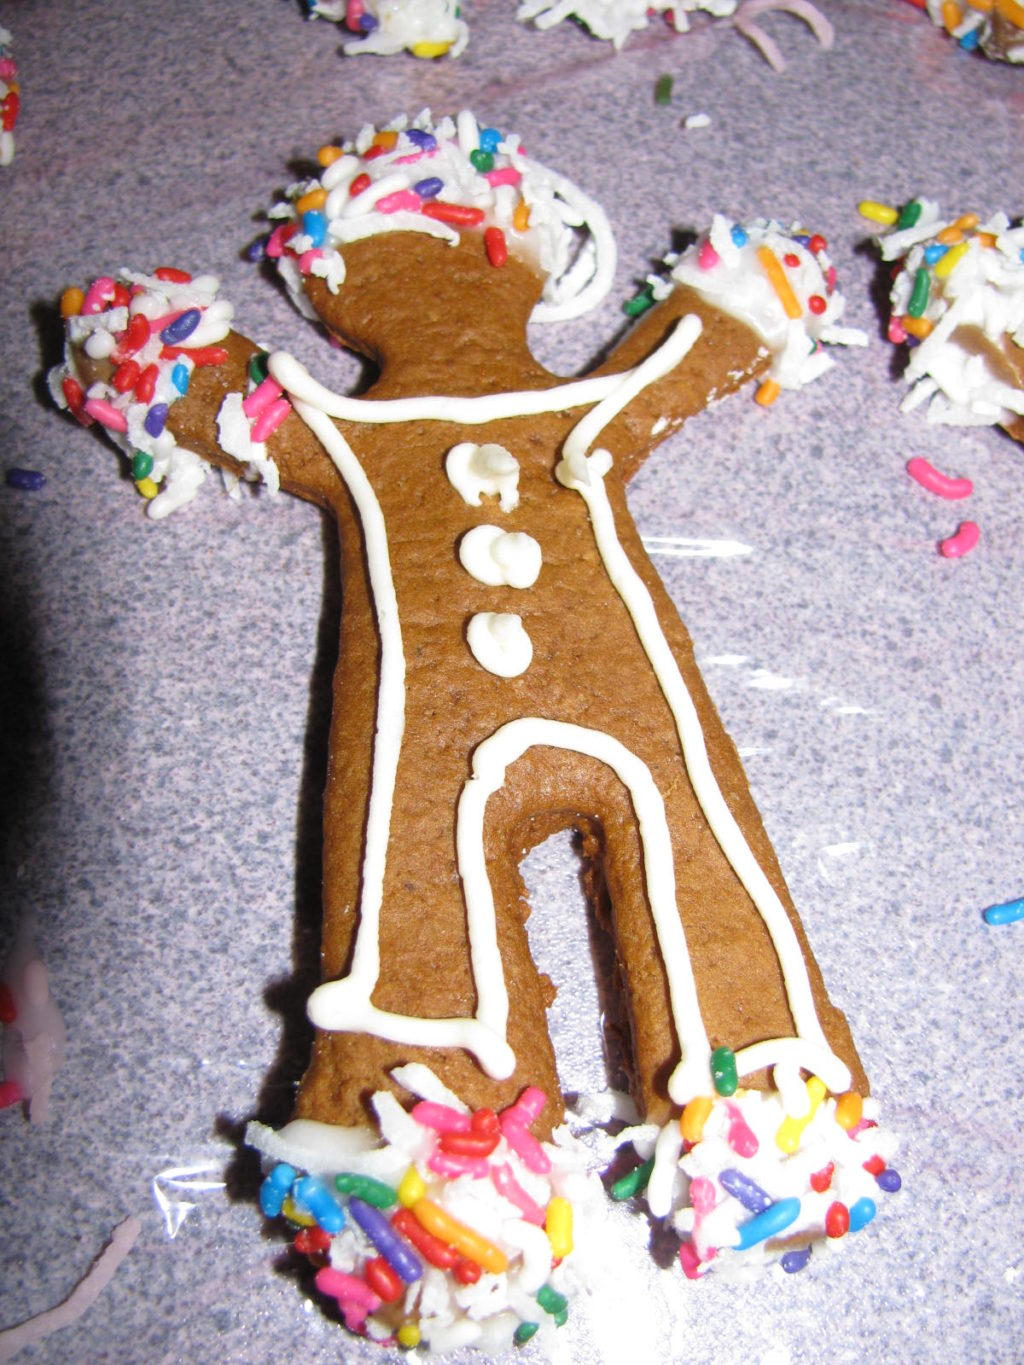 It's time to make Gingerbread Men! Here's the recipe and decorating recipes. Have fun. Tasty, fun to make and little ones love them!